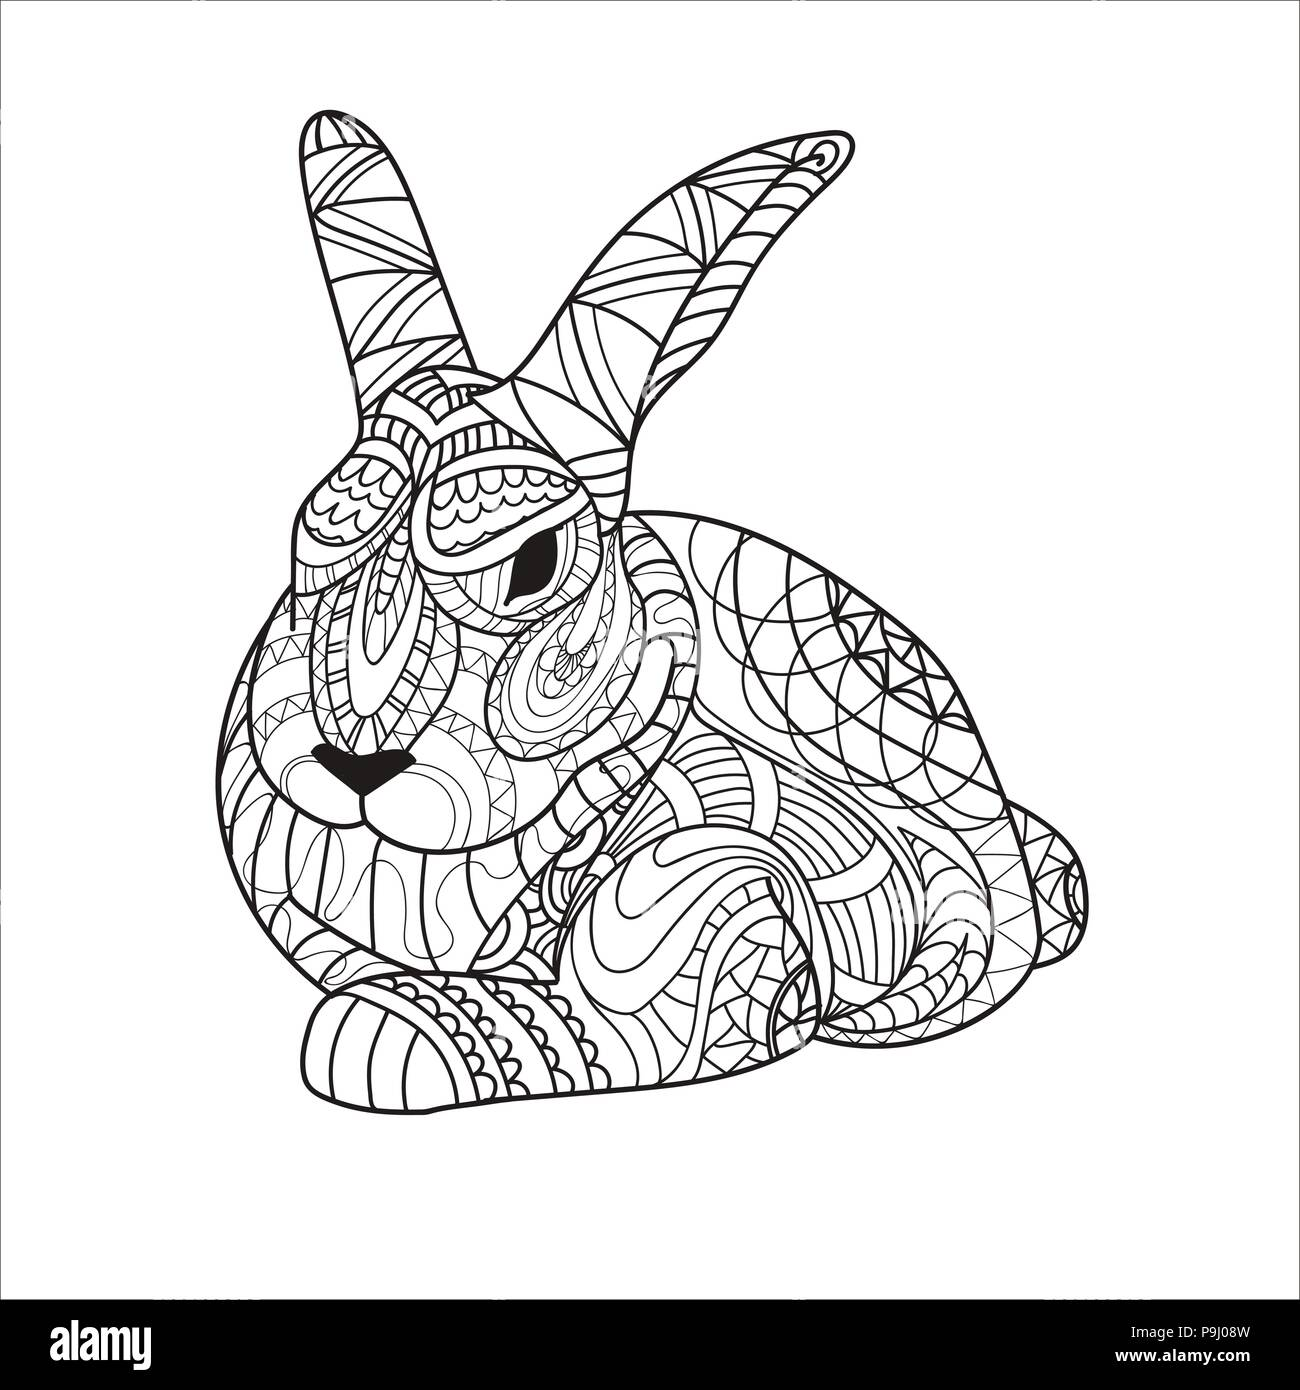 coloring coloring page bunny rabbit rodent pattern vector P9J08W